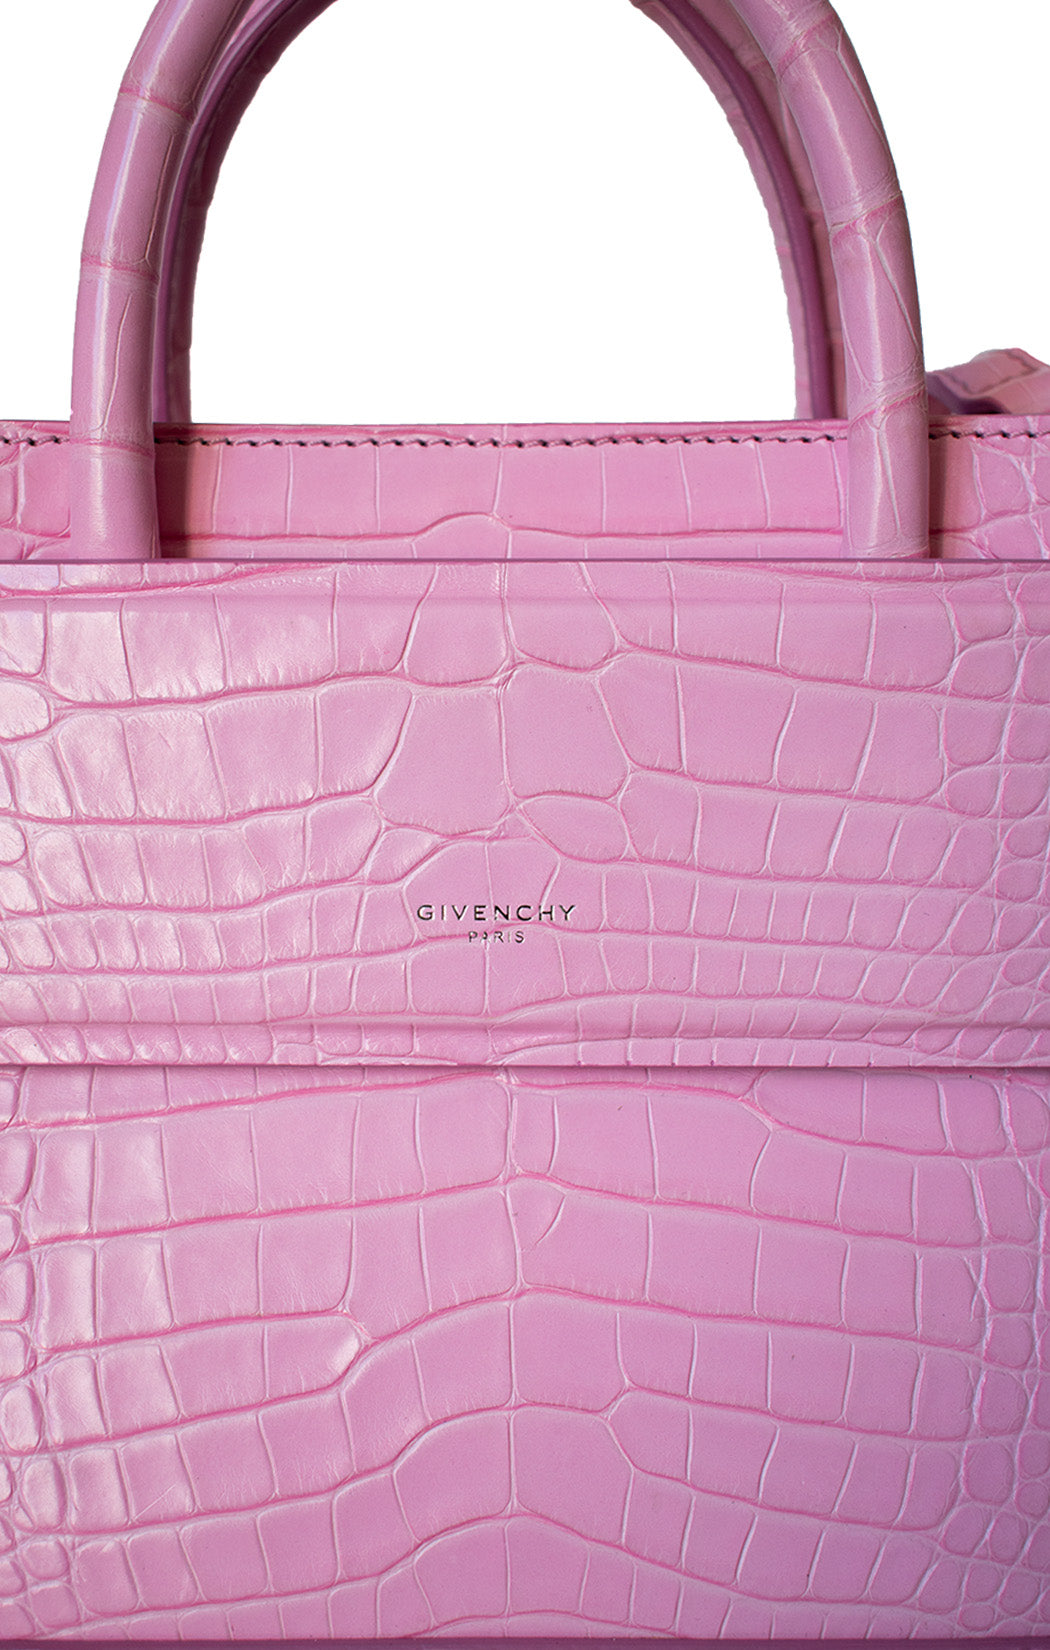 Closeup view of GIVENCHY Alligator Mini Horizon Handbag